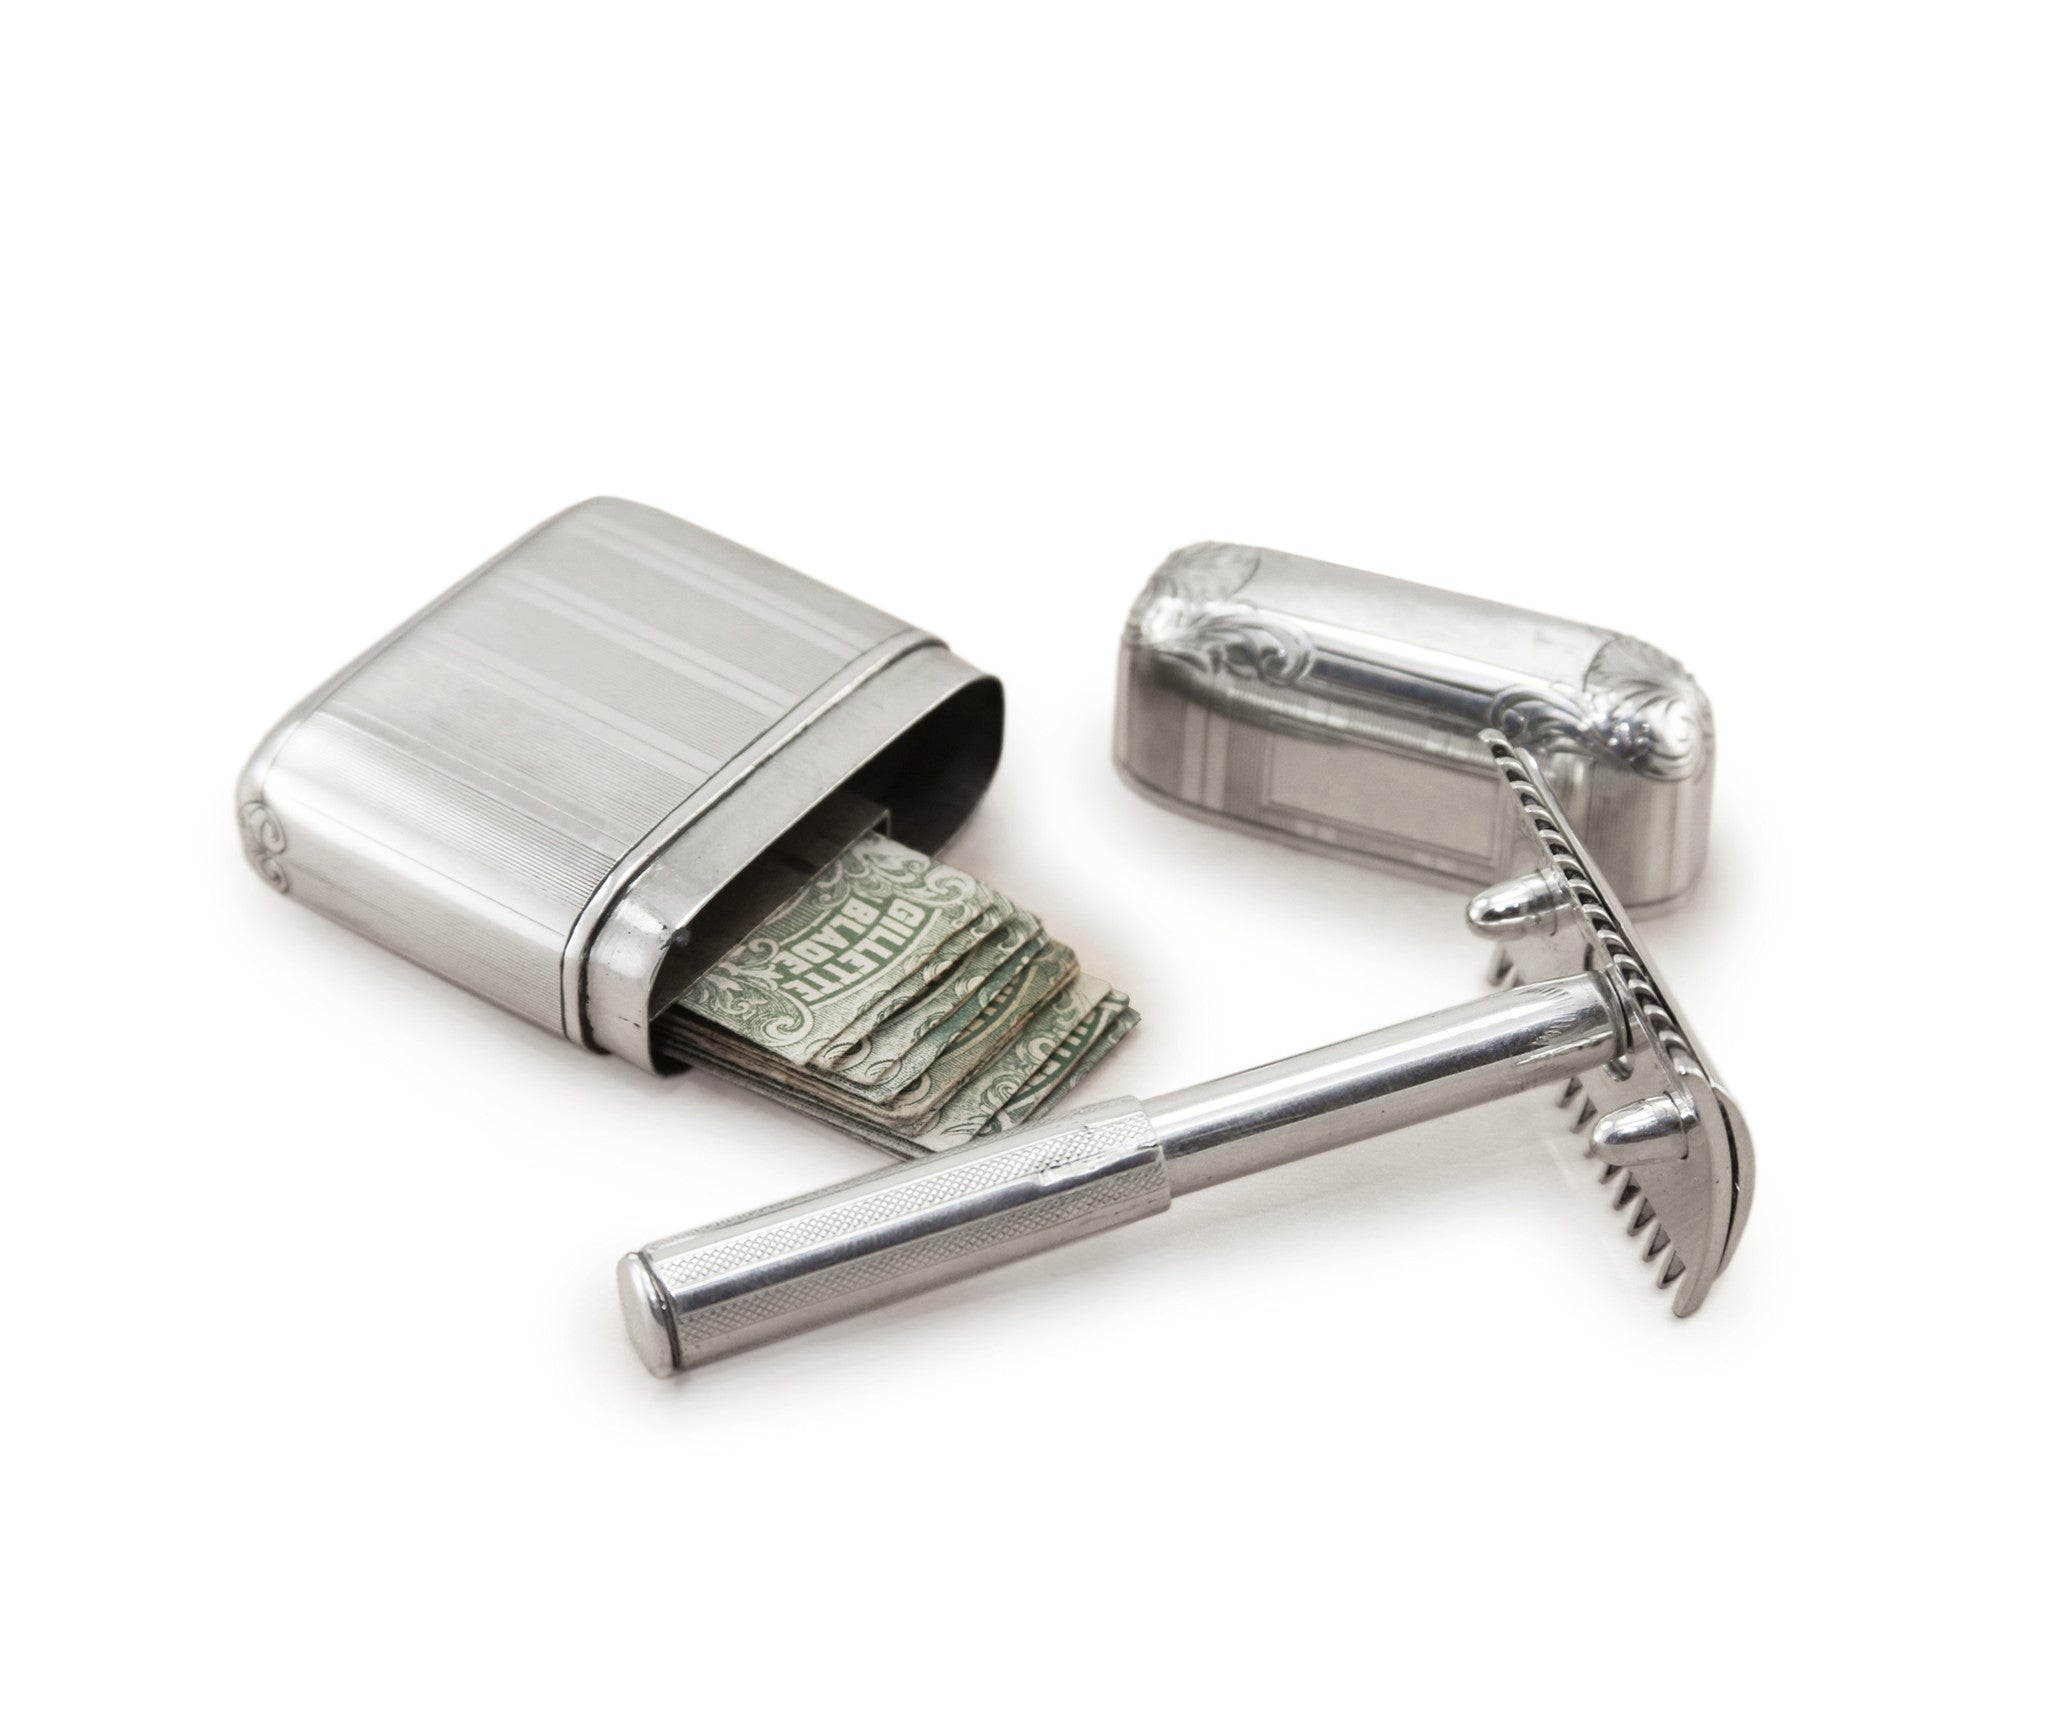 1920's Gillette Luxury Sterling Silver Razor Set